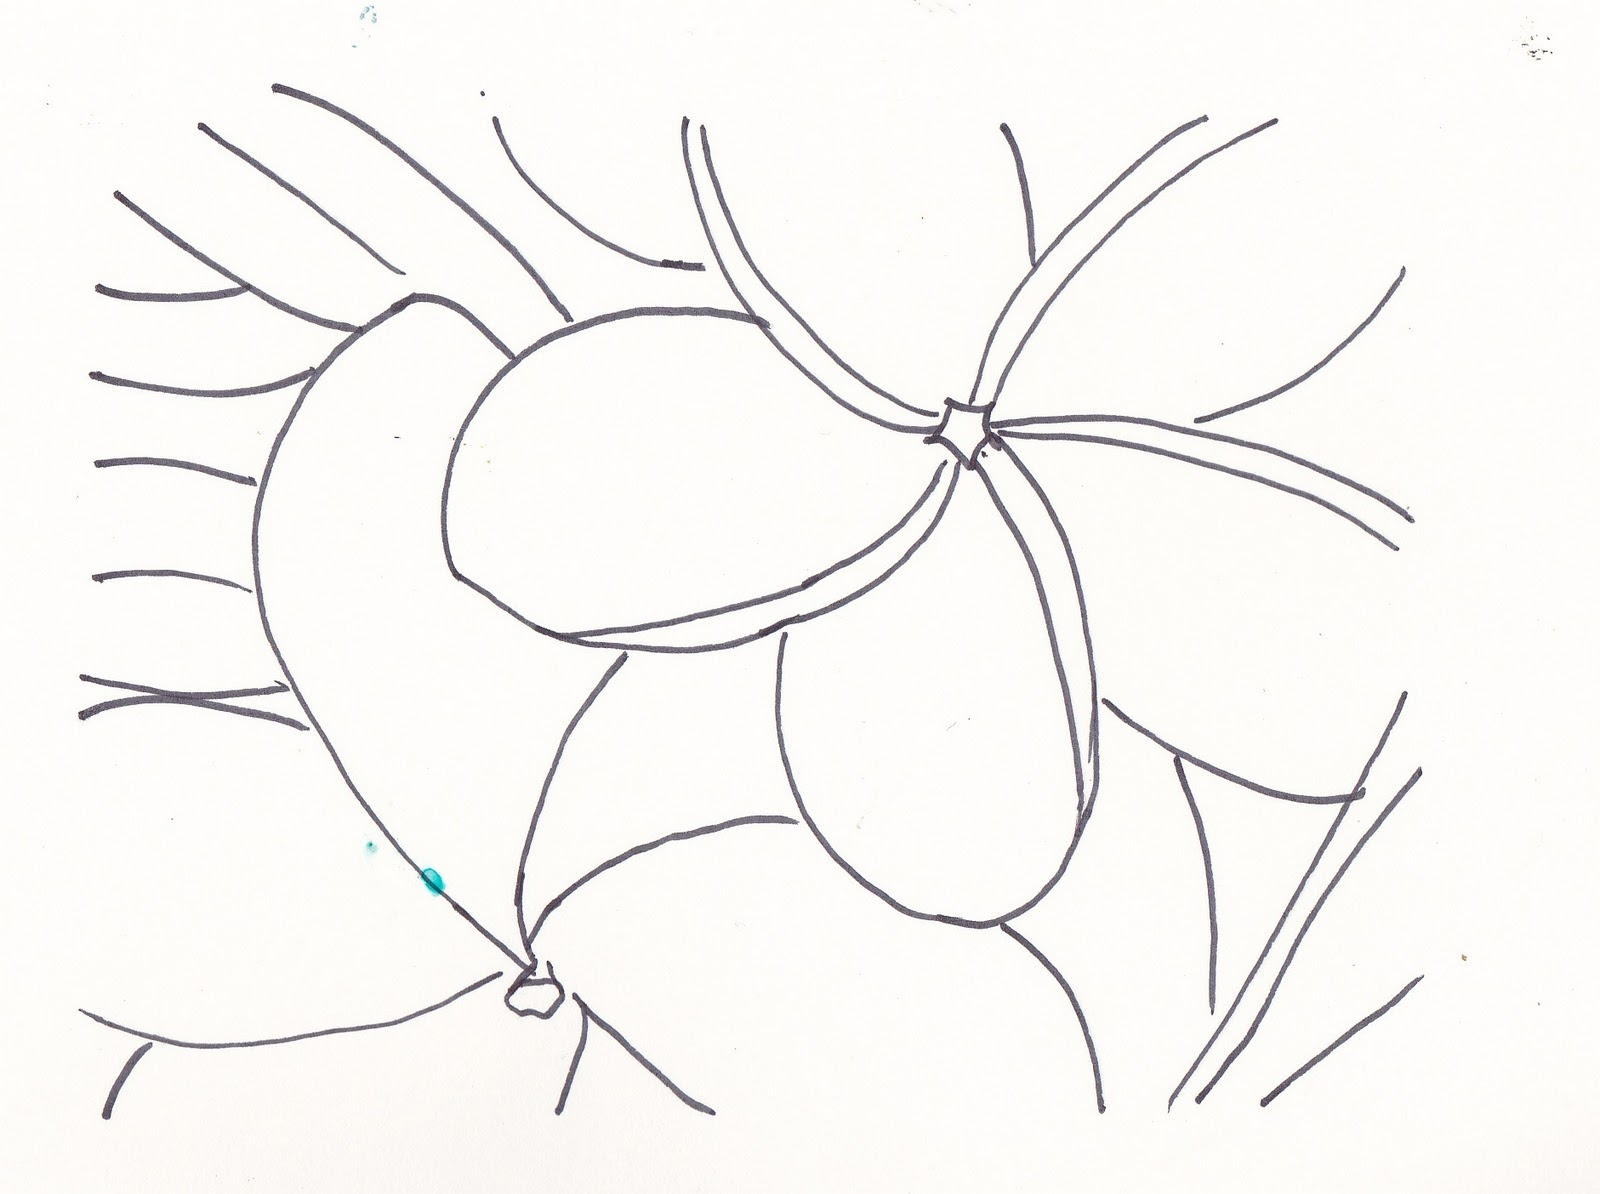 coloring pages of plumerias - photo#15